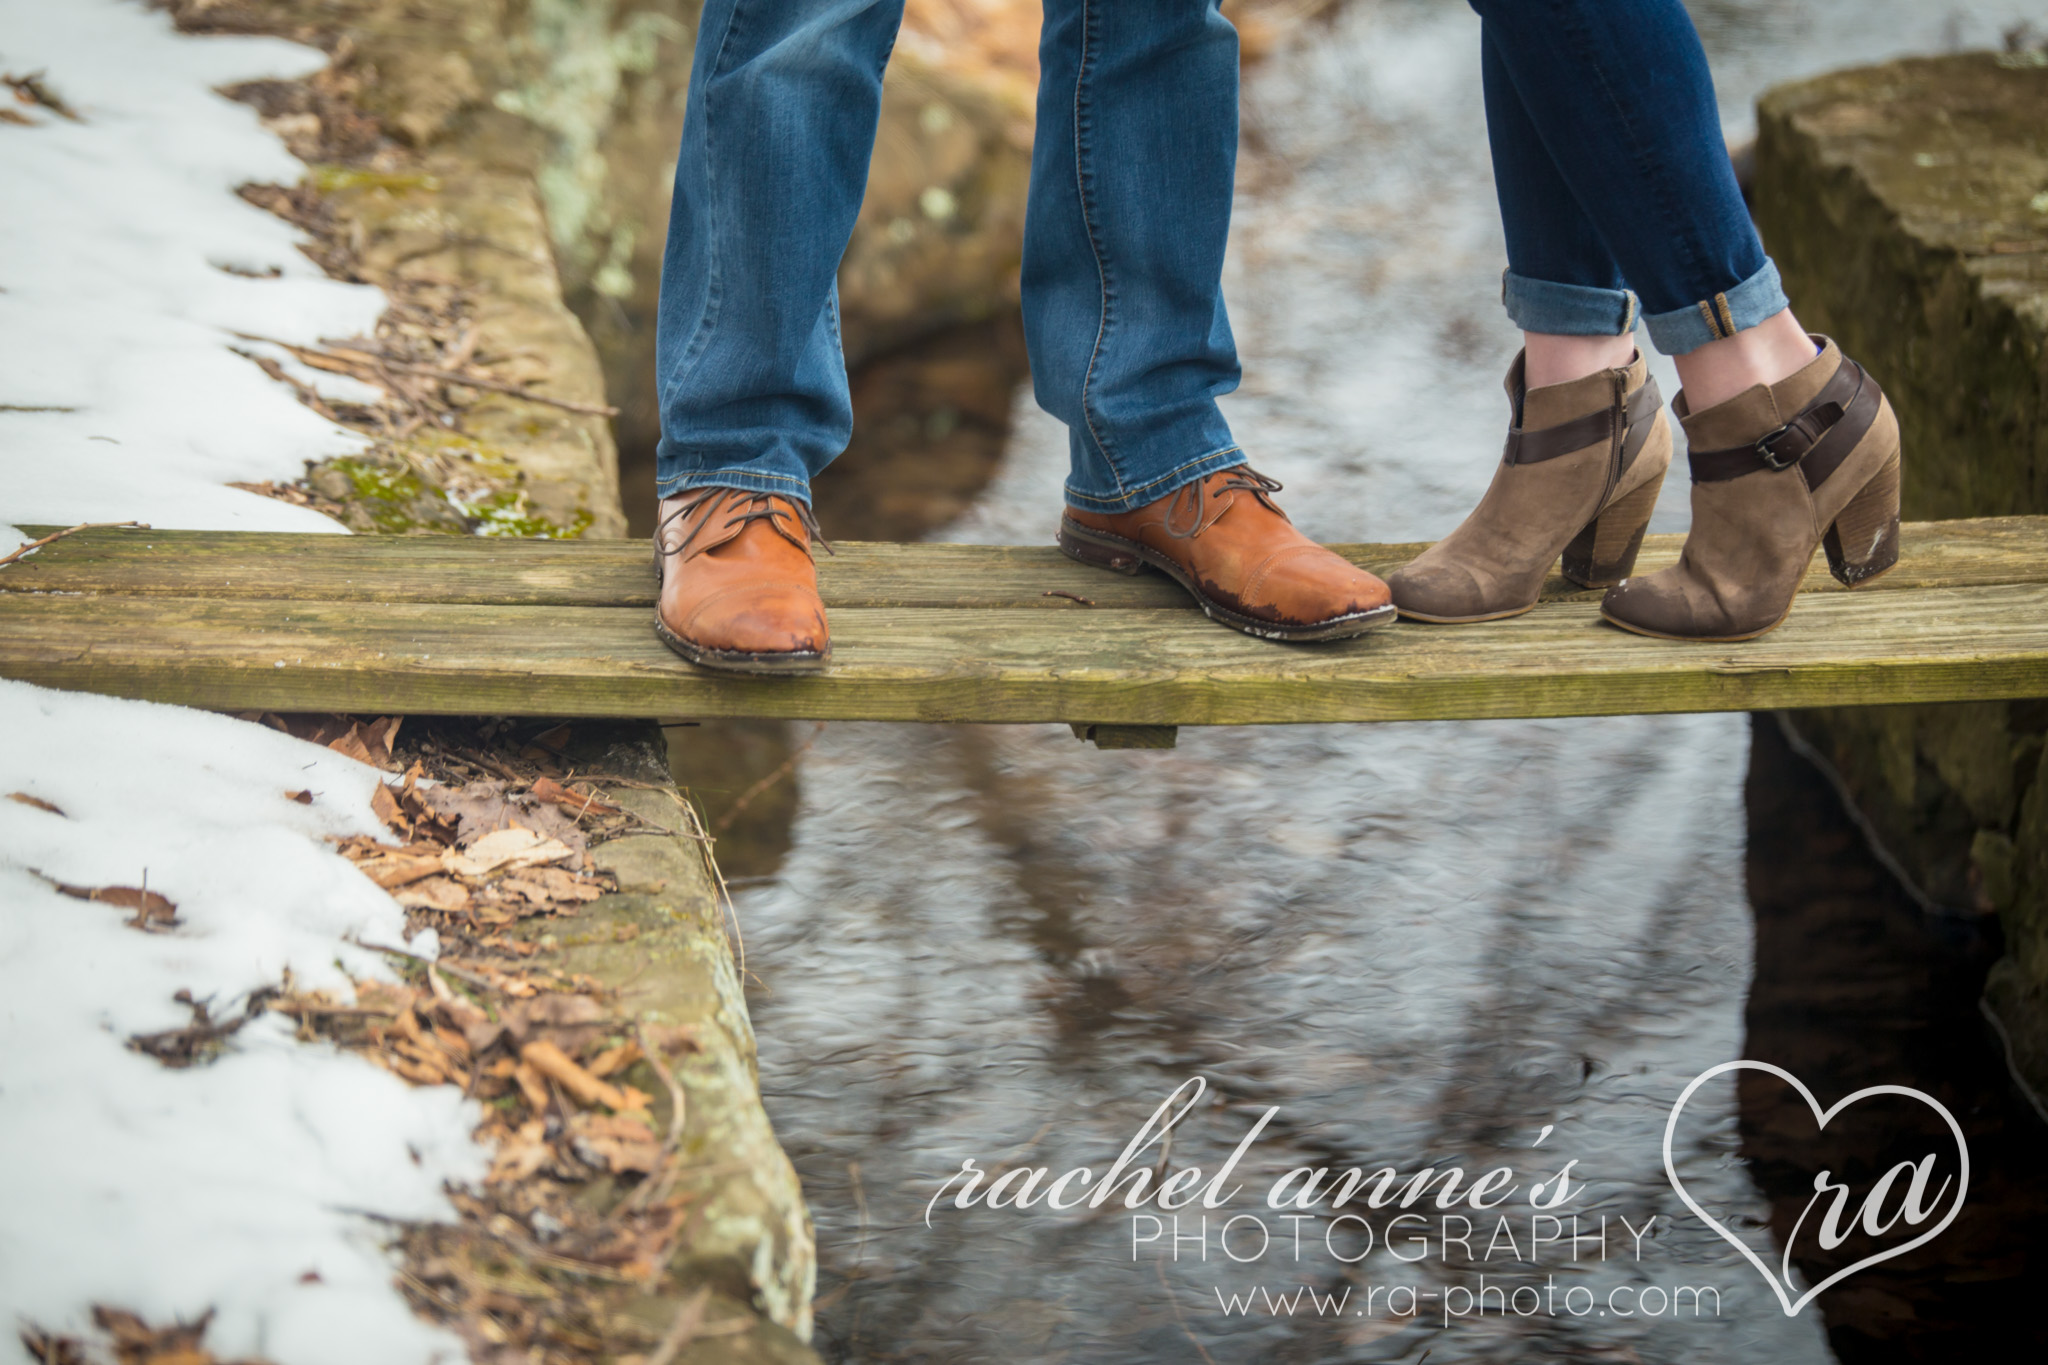 032-JKM-DUBOIS-PA-ENGAGEMENT-PHOTOGRAPHY.jpg